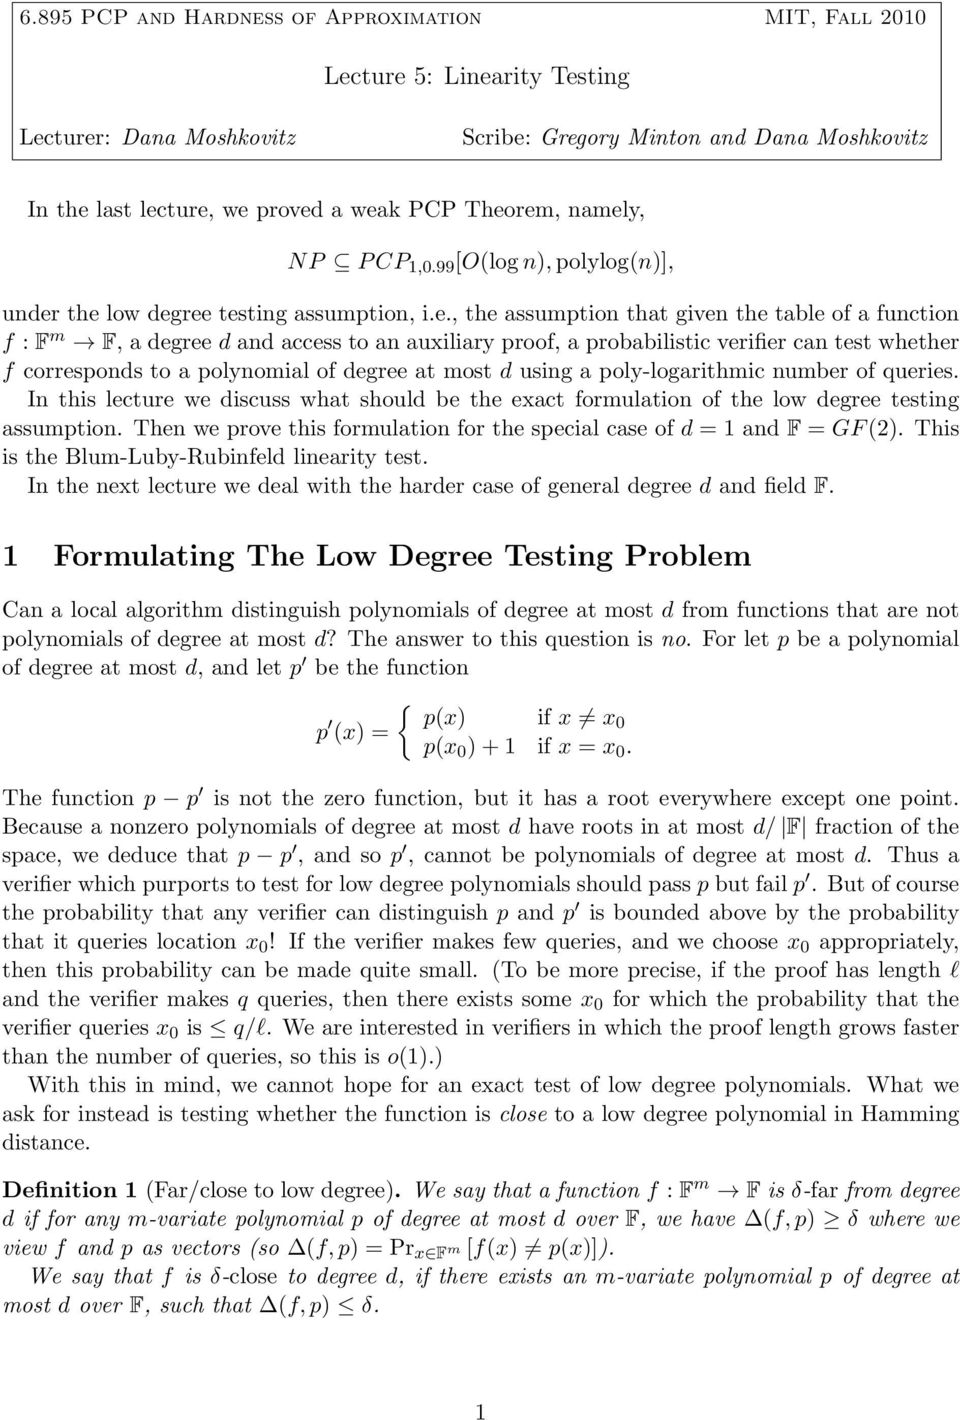 auxiliary proof, a probabilistic verifier can test whether f corresponds to a polynomial of degree at most d using a poly-logarithmic number of queries.